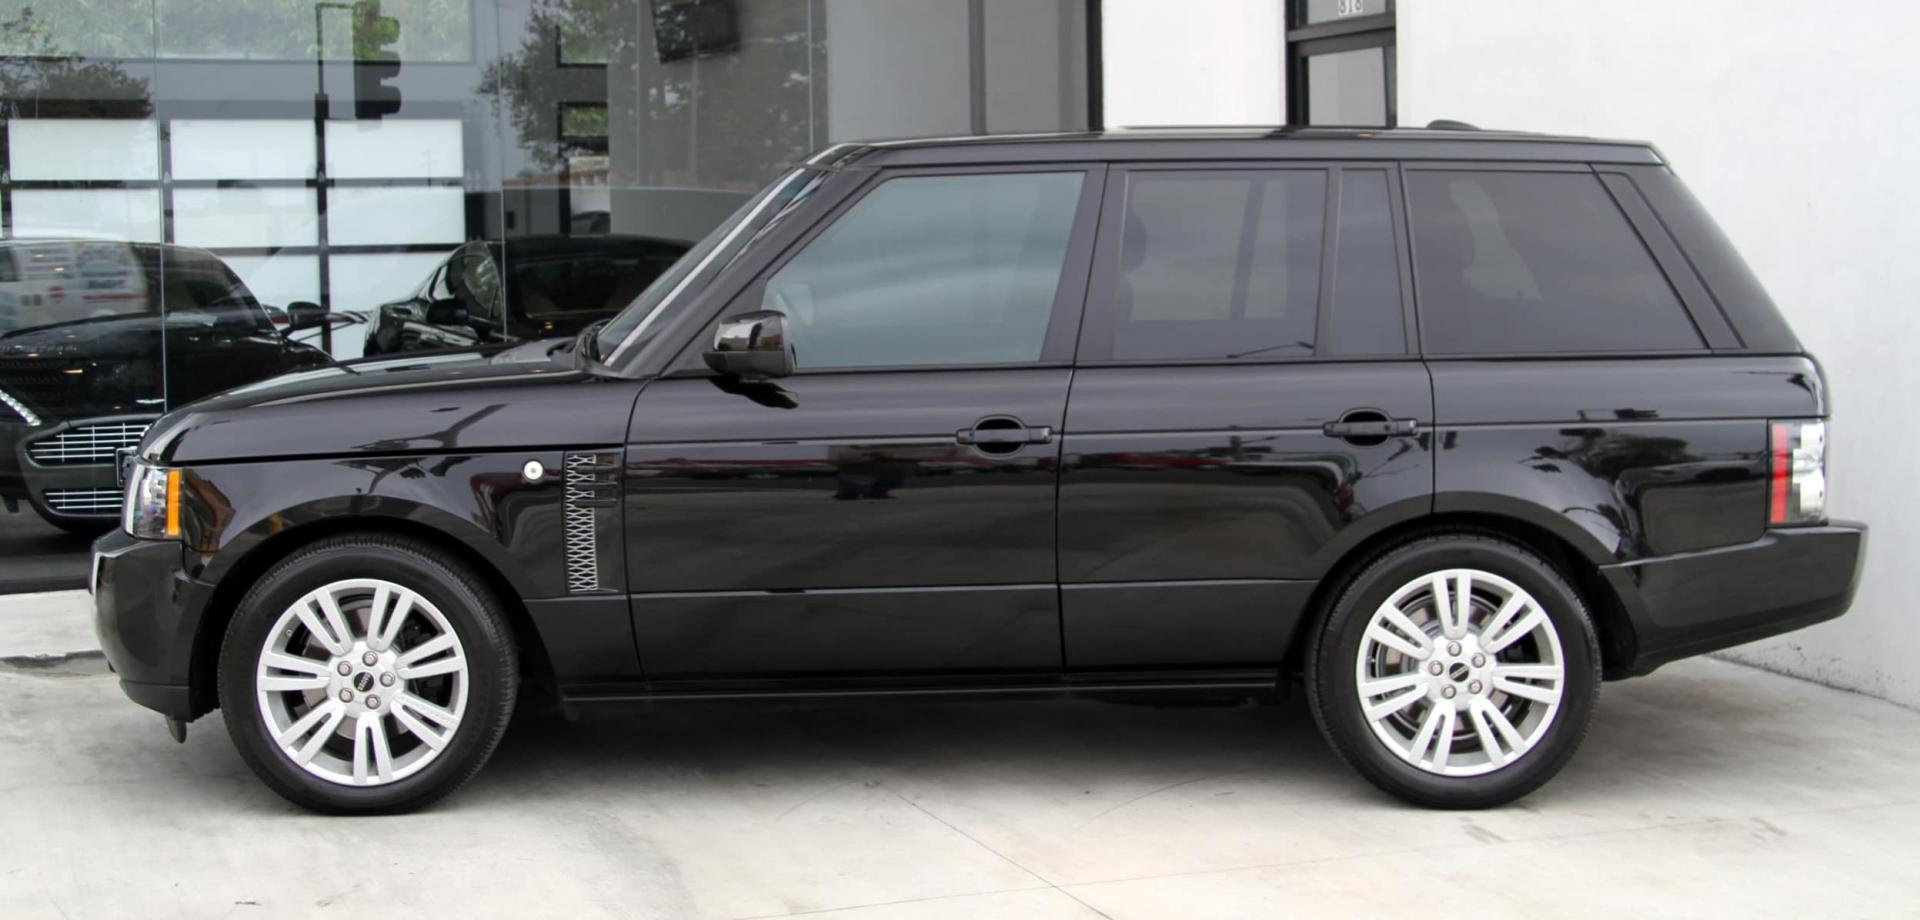 Land Rover For Sale Near Me >> 2012 Land Rover Range Rover HSE ** Luxury Package ** Stock # 5978 for sale near Redondo Beach ...